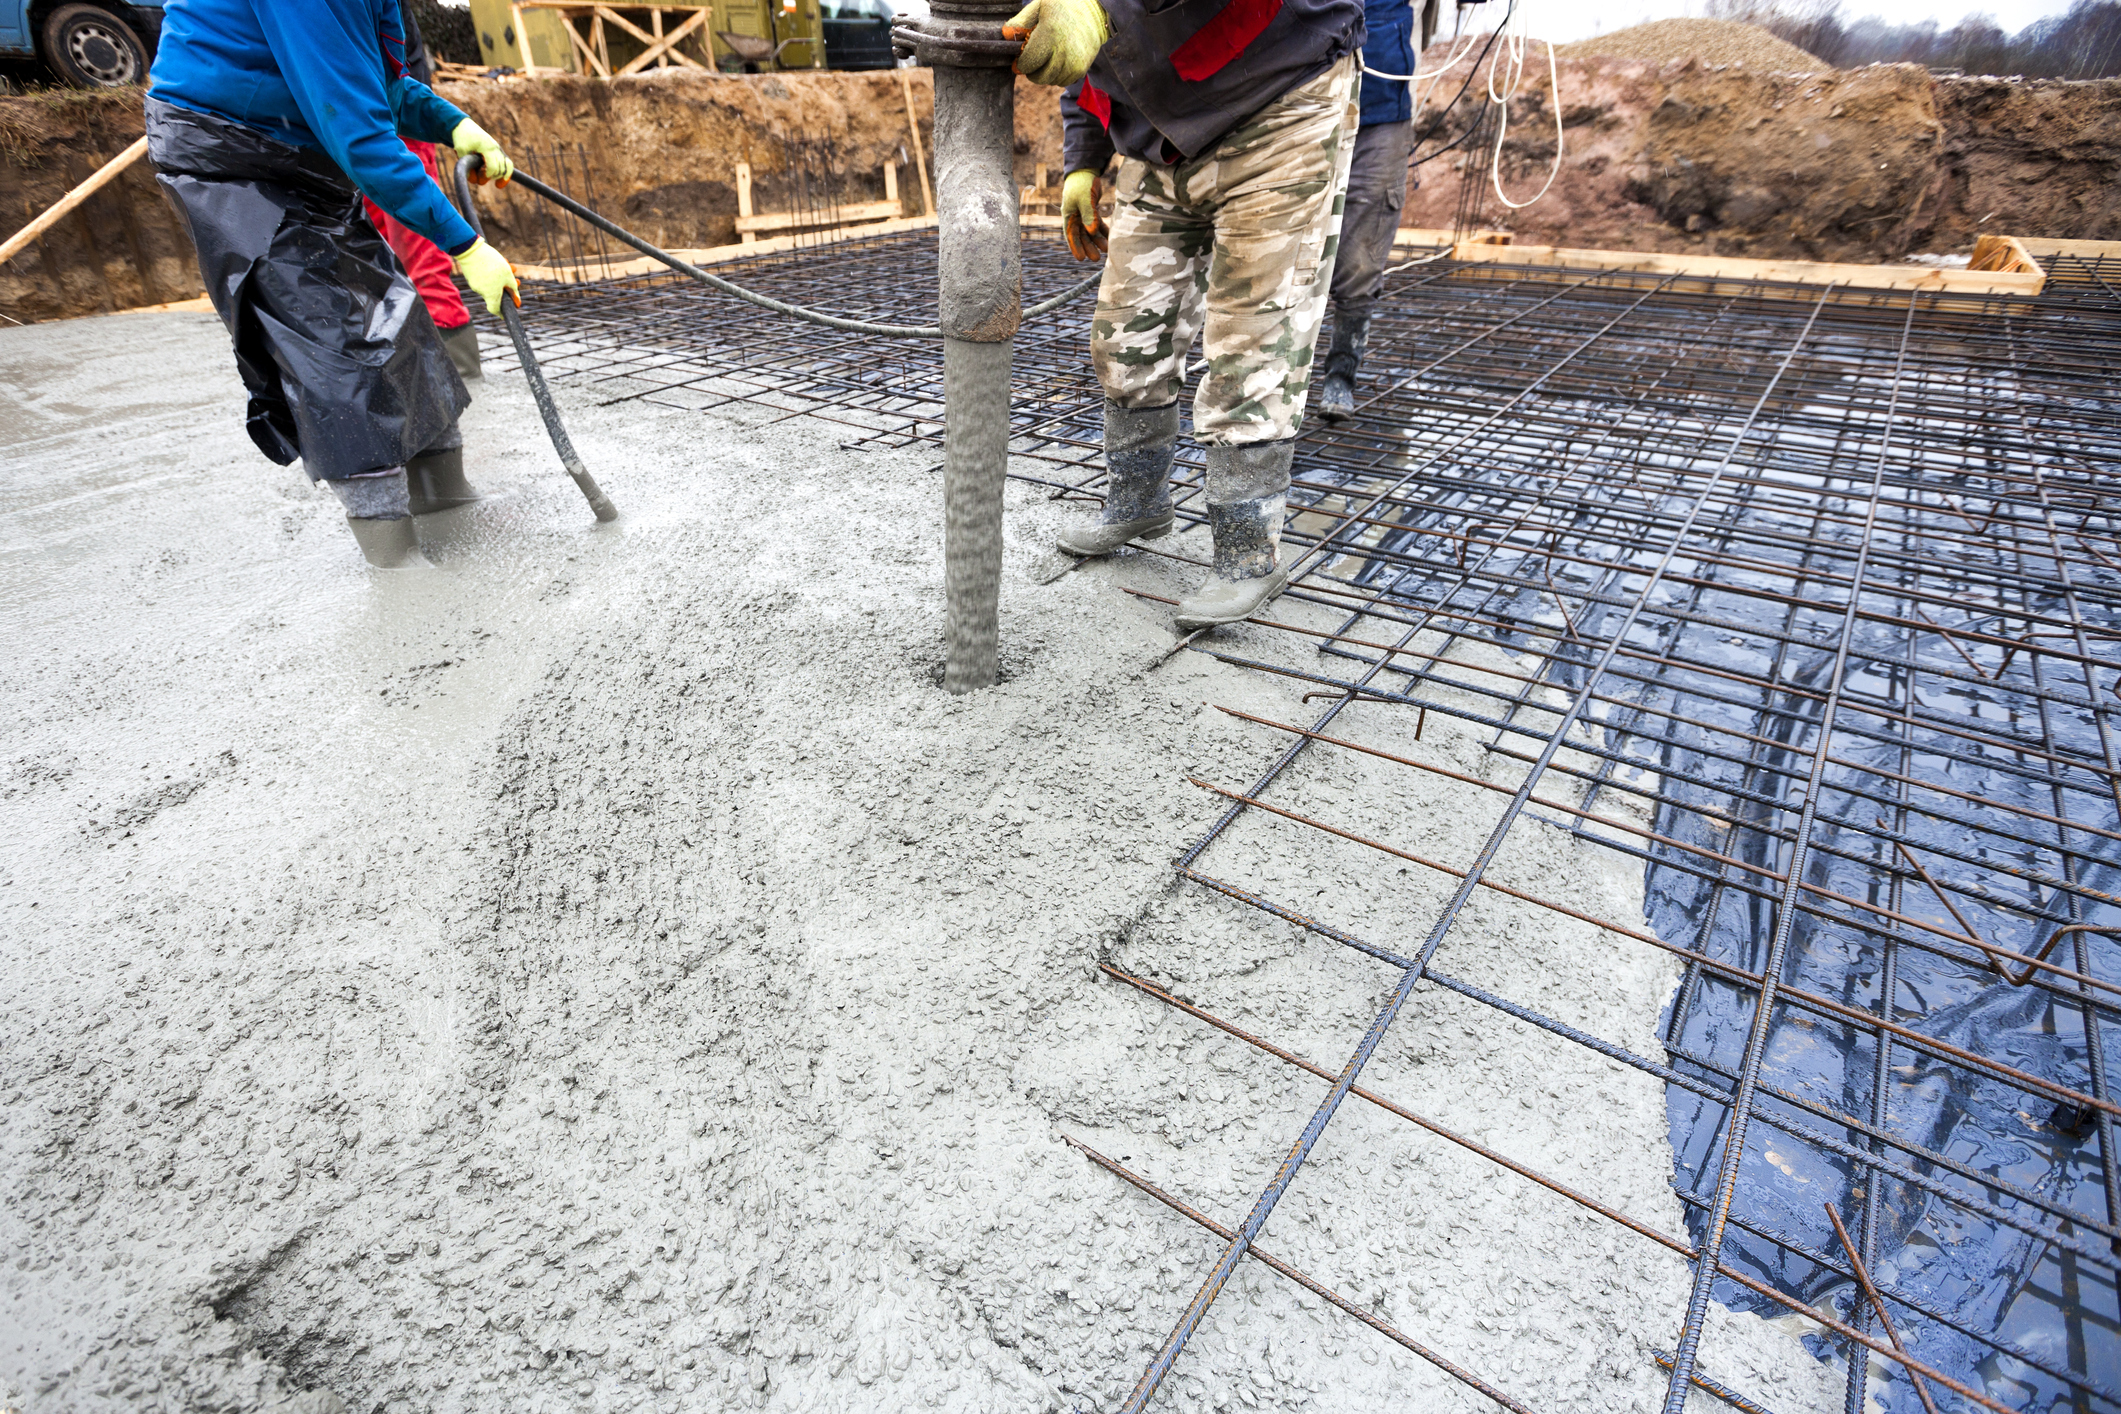 engineered foundations - Conventional, Post-Tensioned, Pier and Beam, Pier-supported Slabs